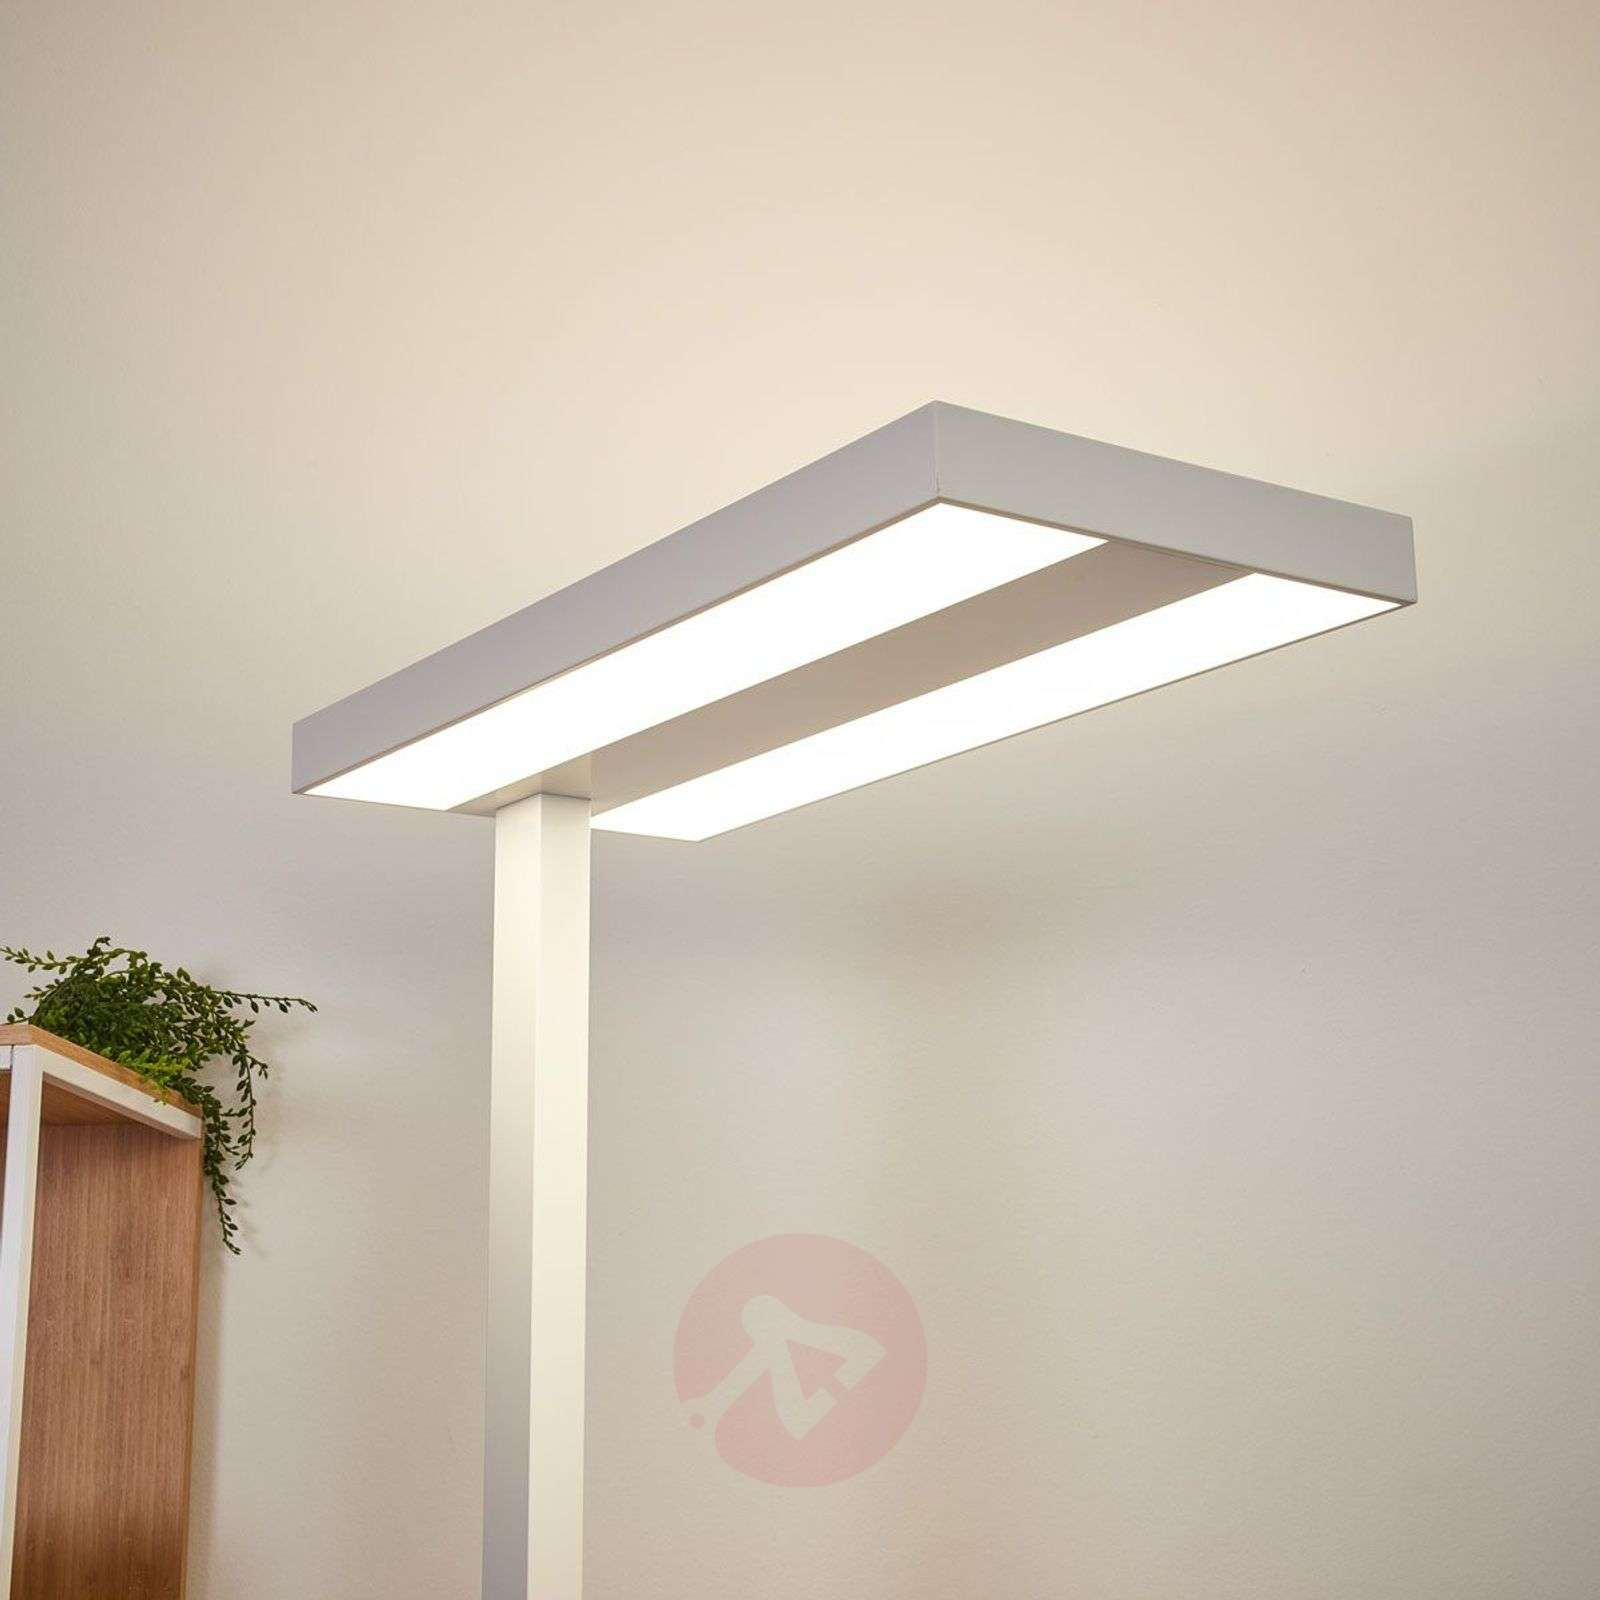 lamp office. Logan LED Office Floor Lamp With Dimmer In White-9968004-02 R